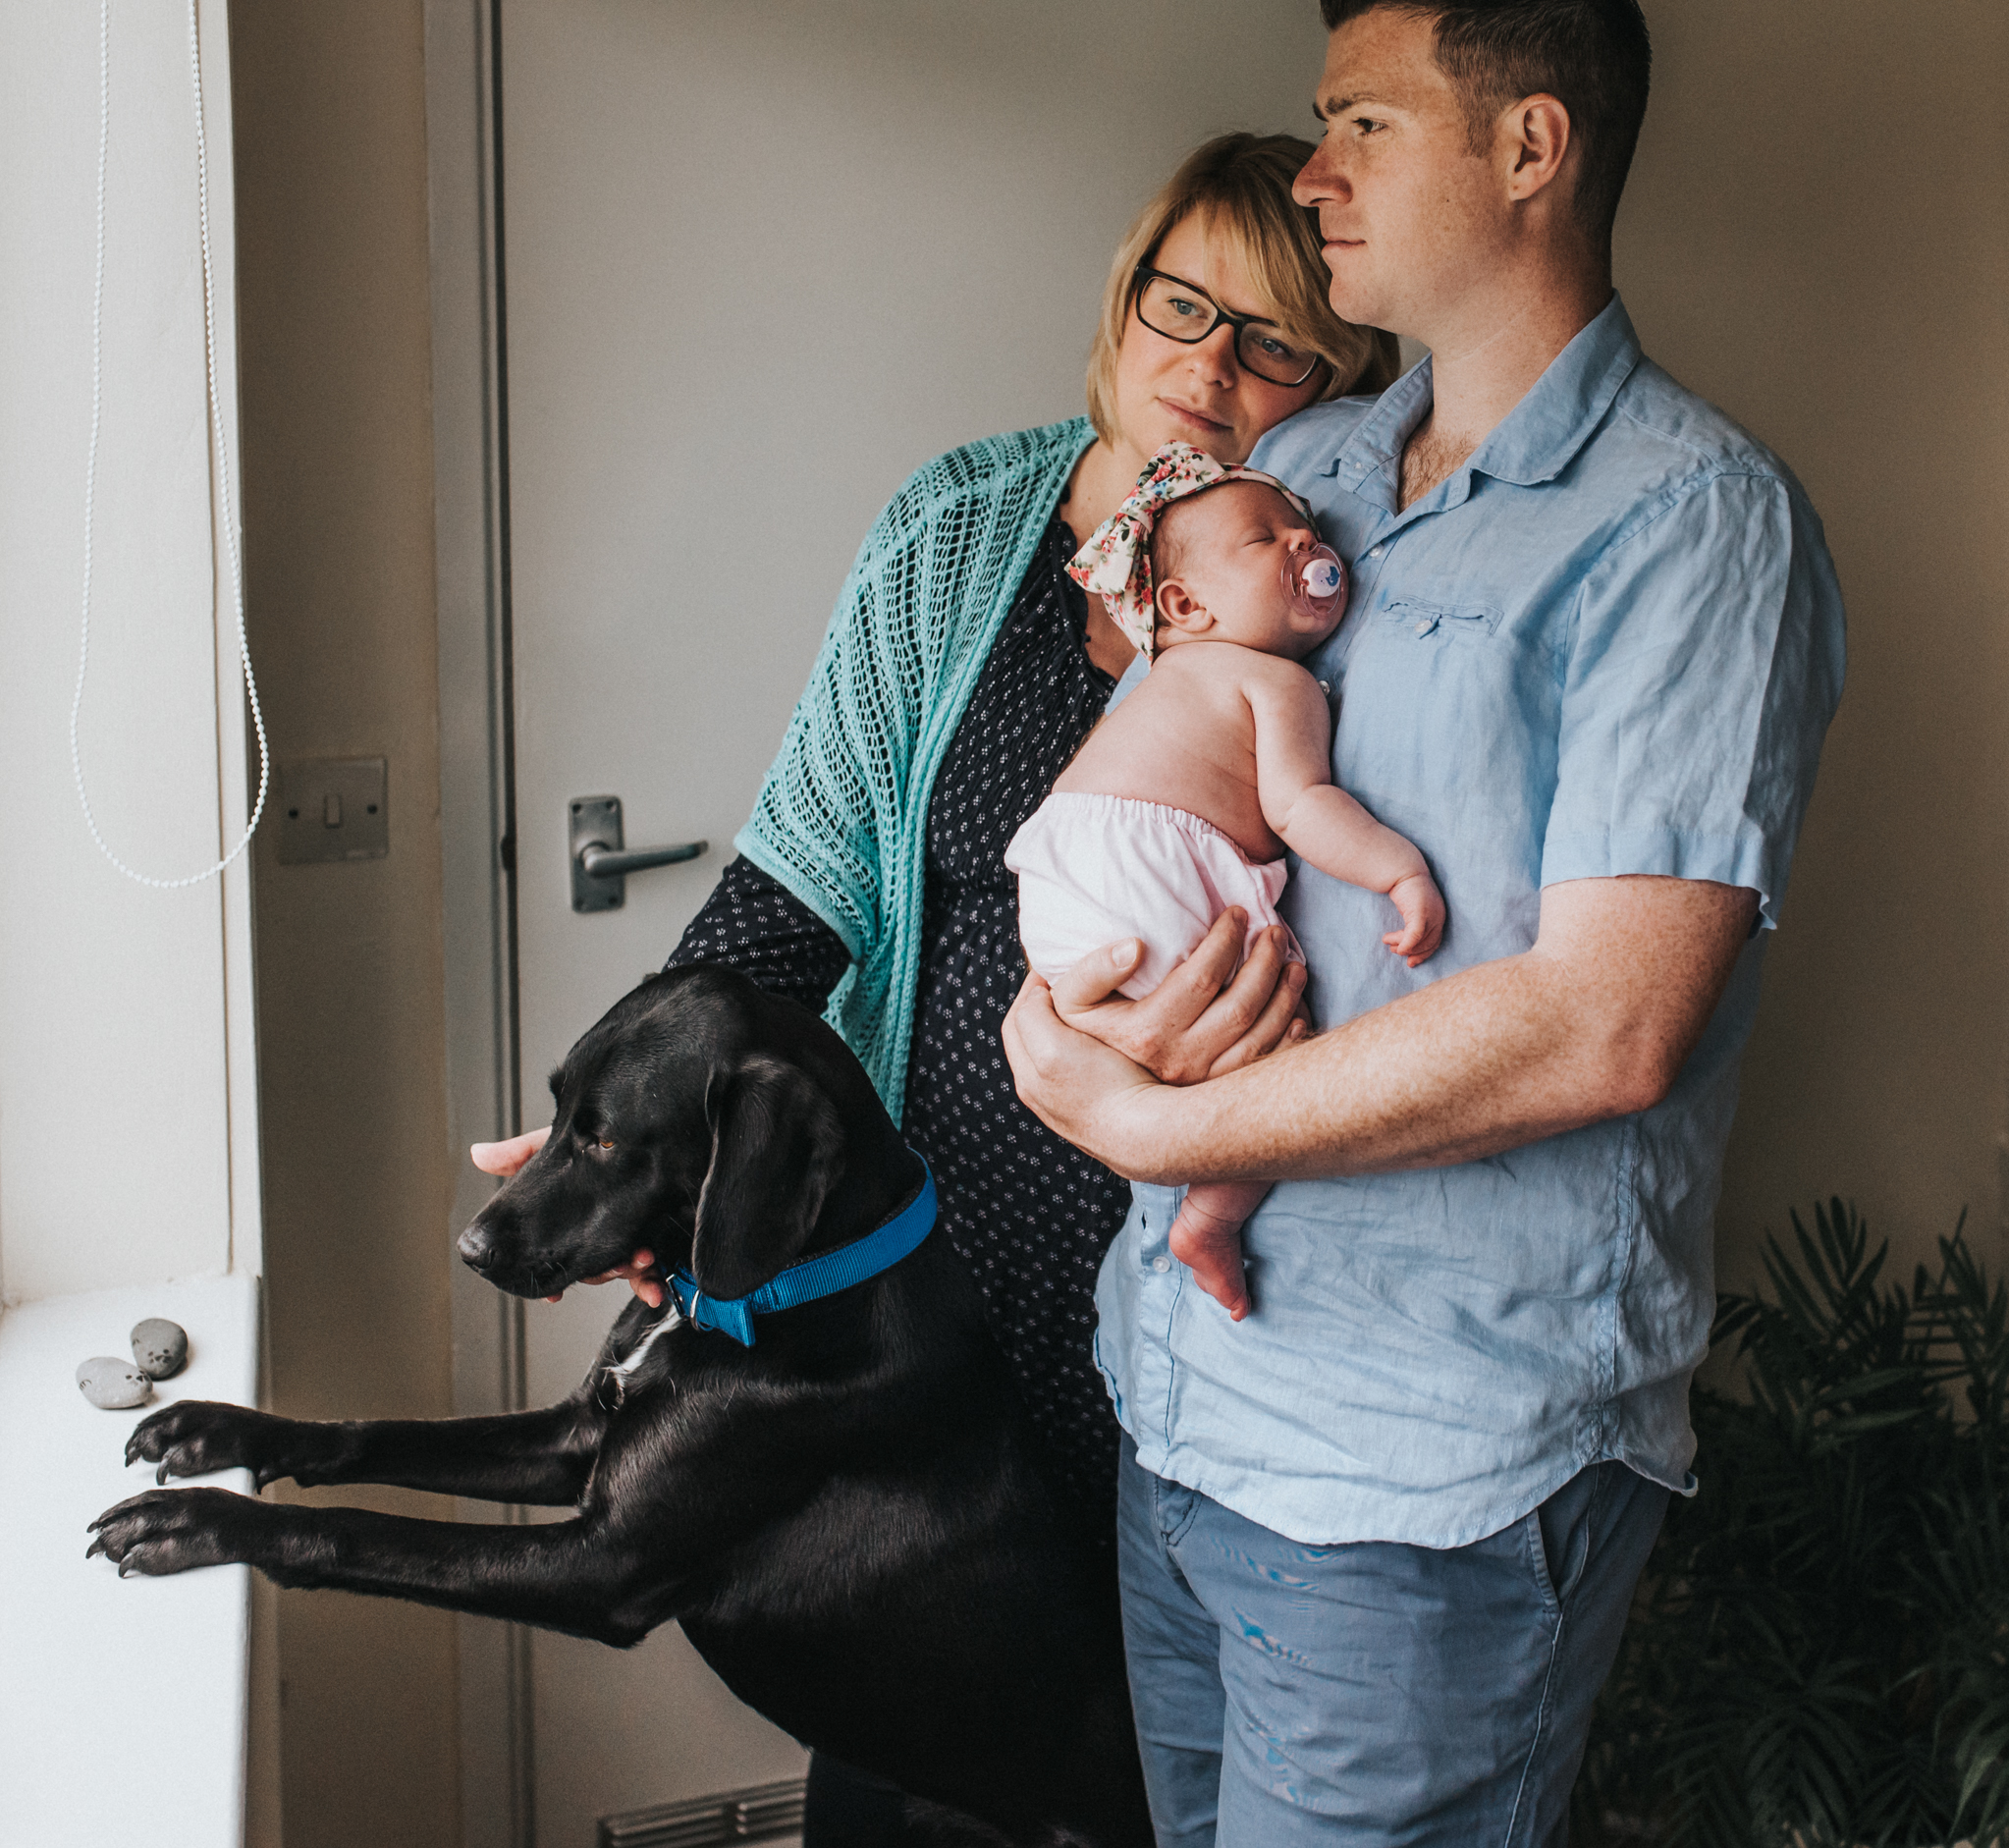 family with dog and newborn looking out of window